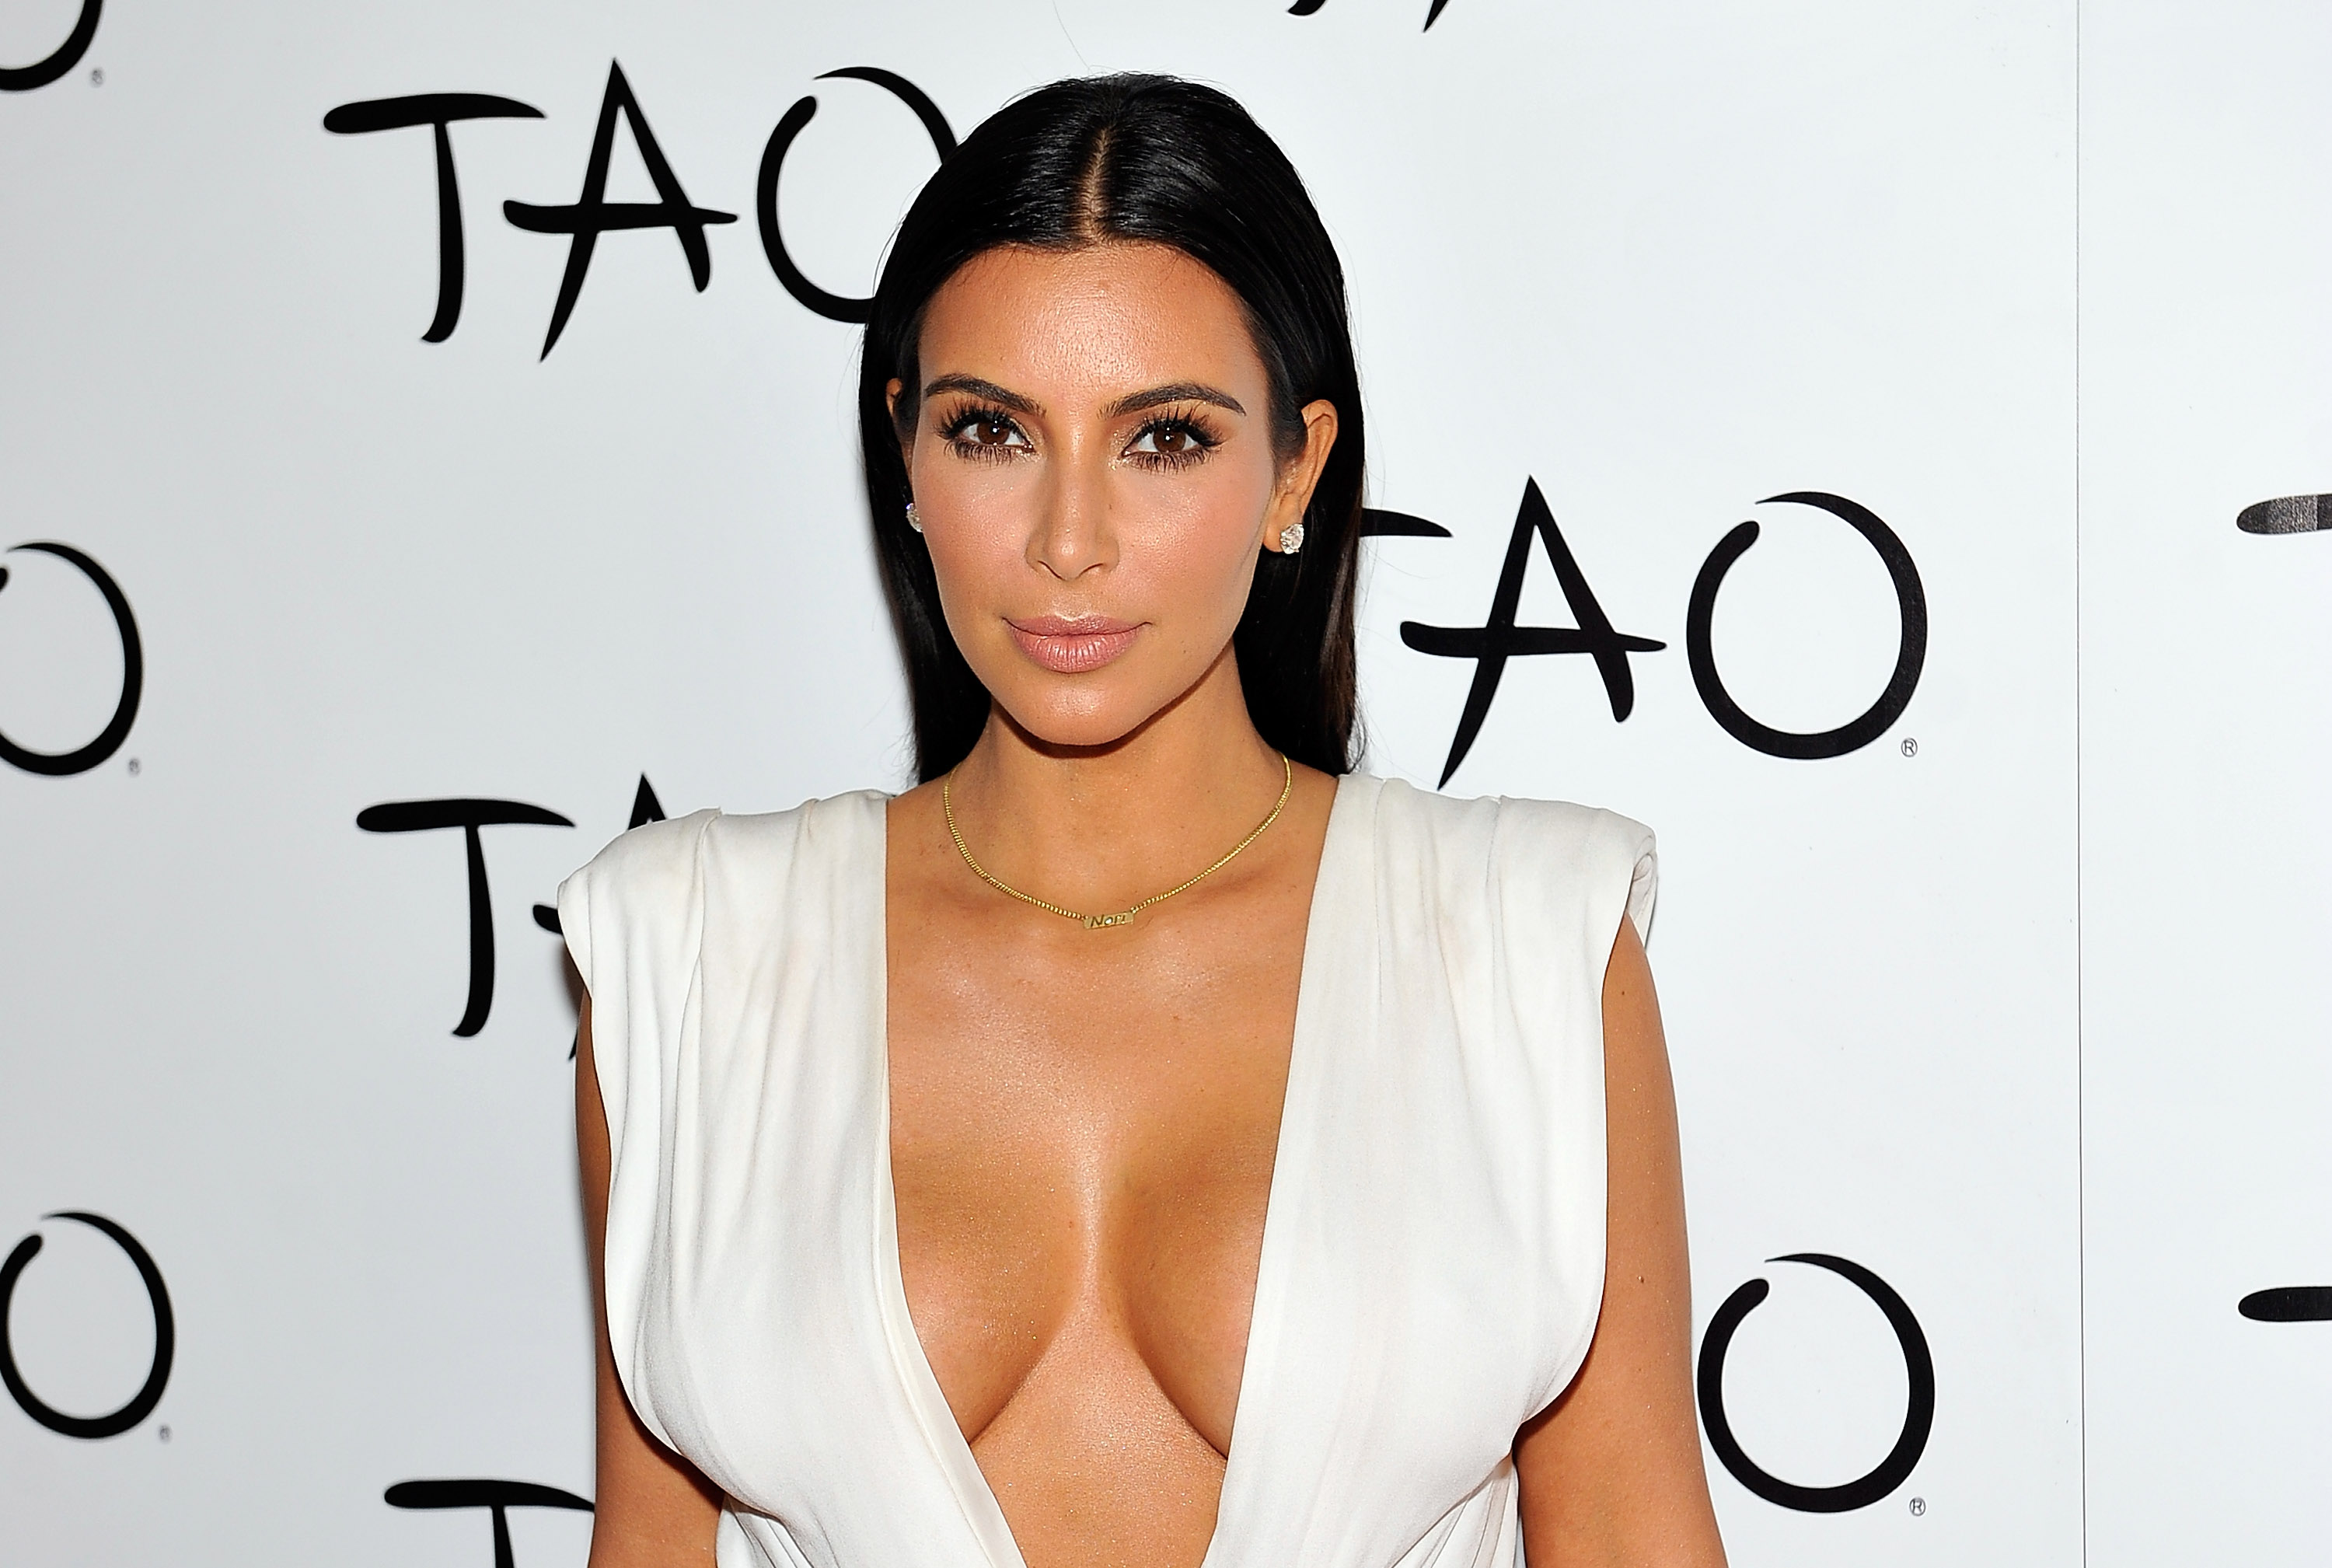 Kim Kardashian Celebrates Her Birthday At Tao Nightclub